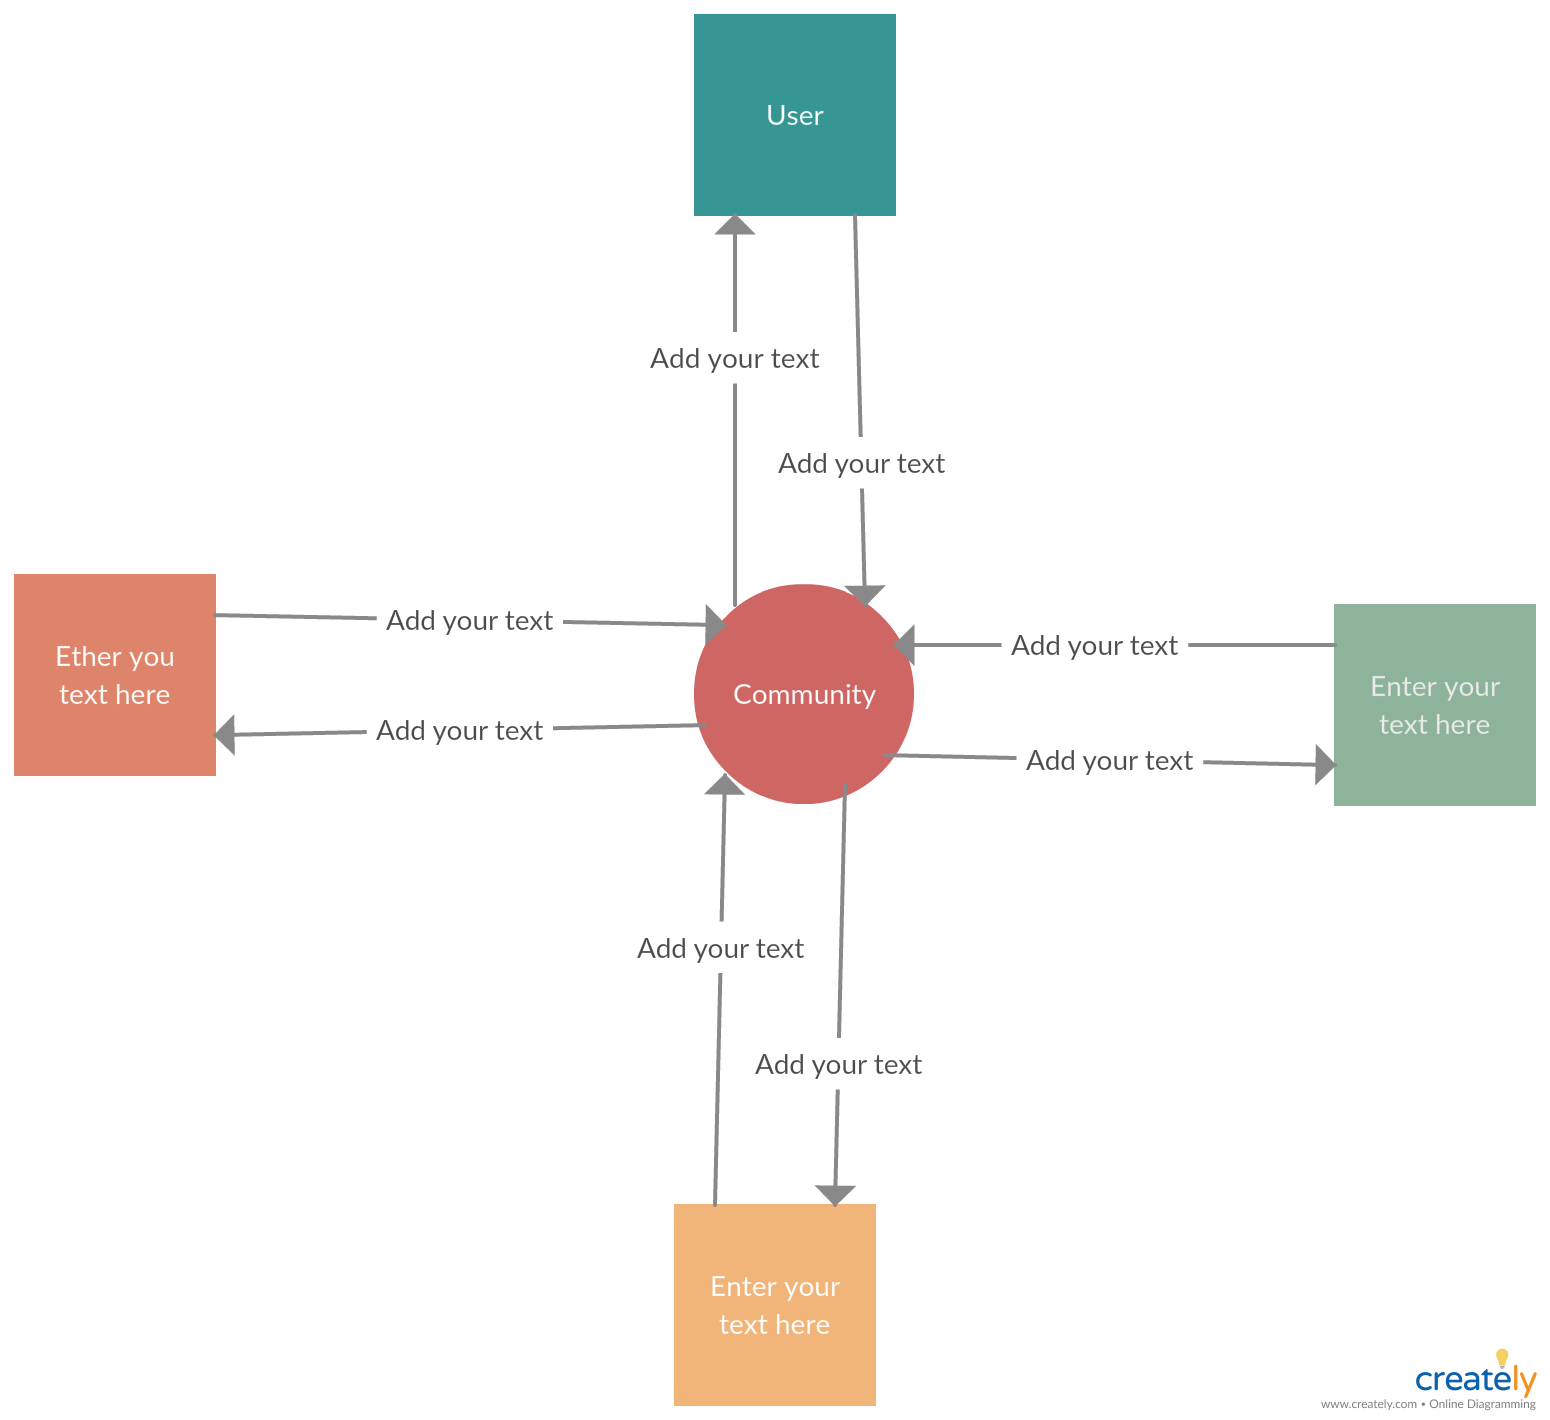 hight resolution of a data flow diagram of school management system level 1 shared by one of our users with our community dfd yc chaos theory2 data flow diagram